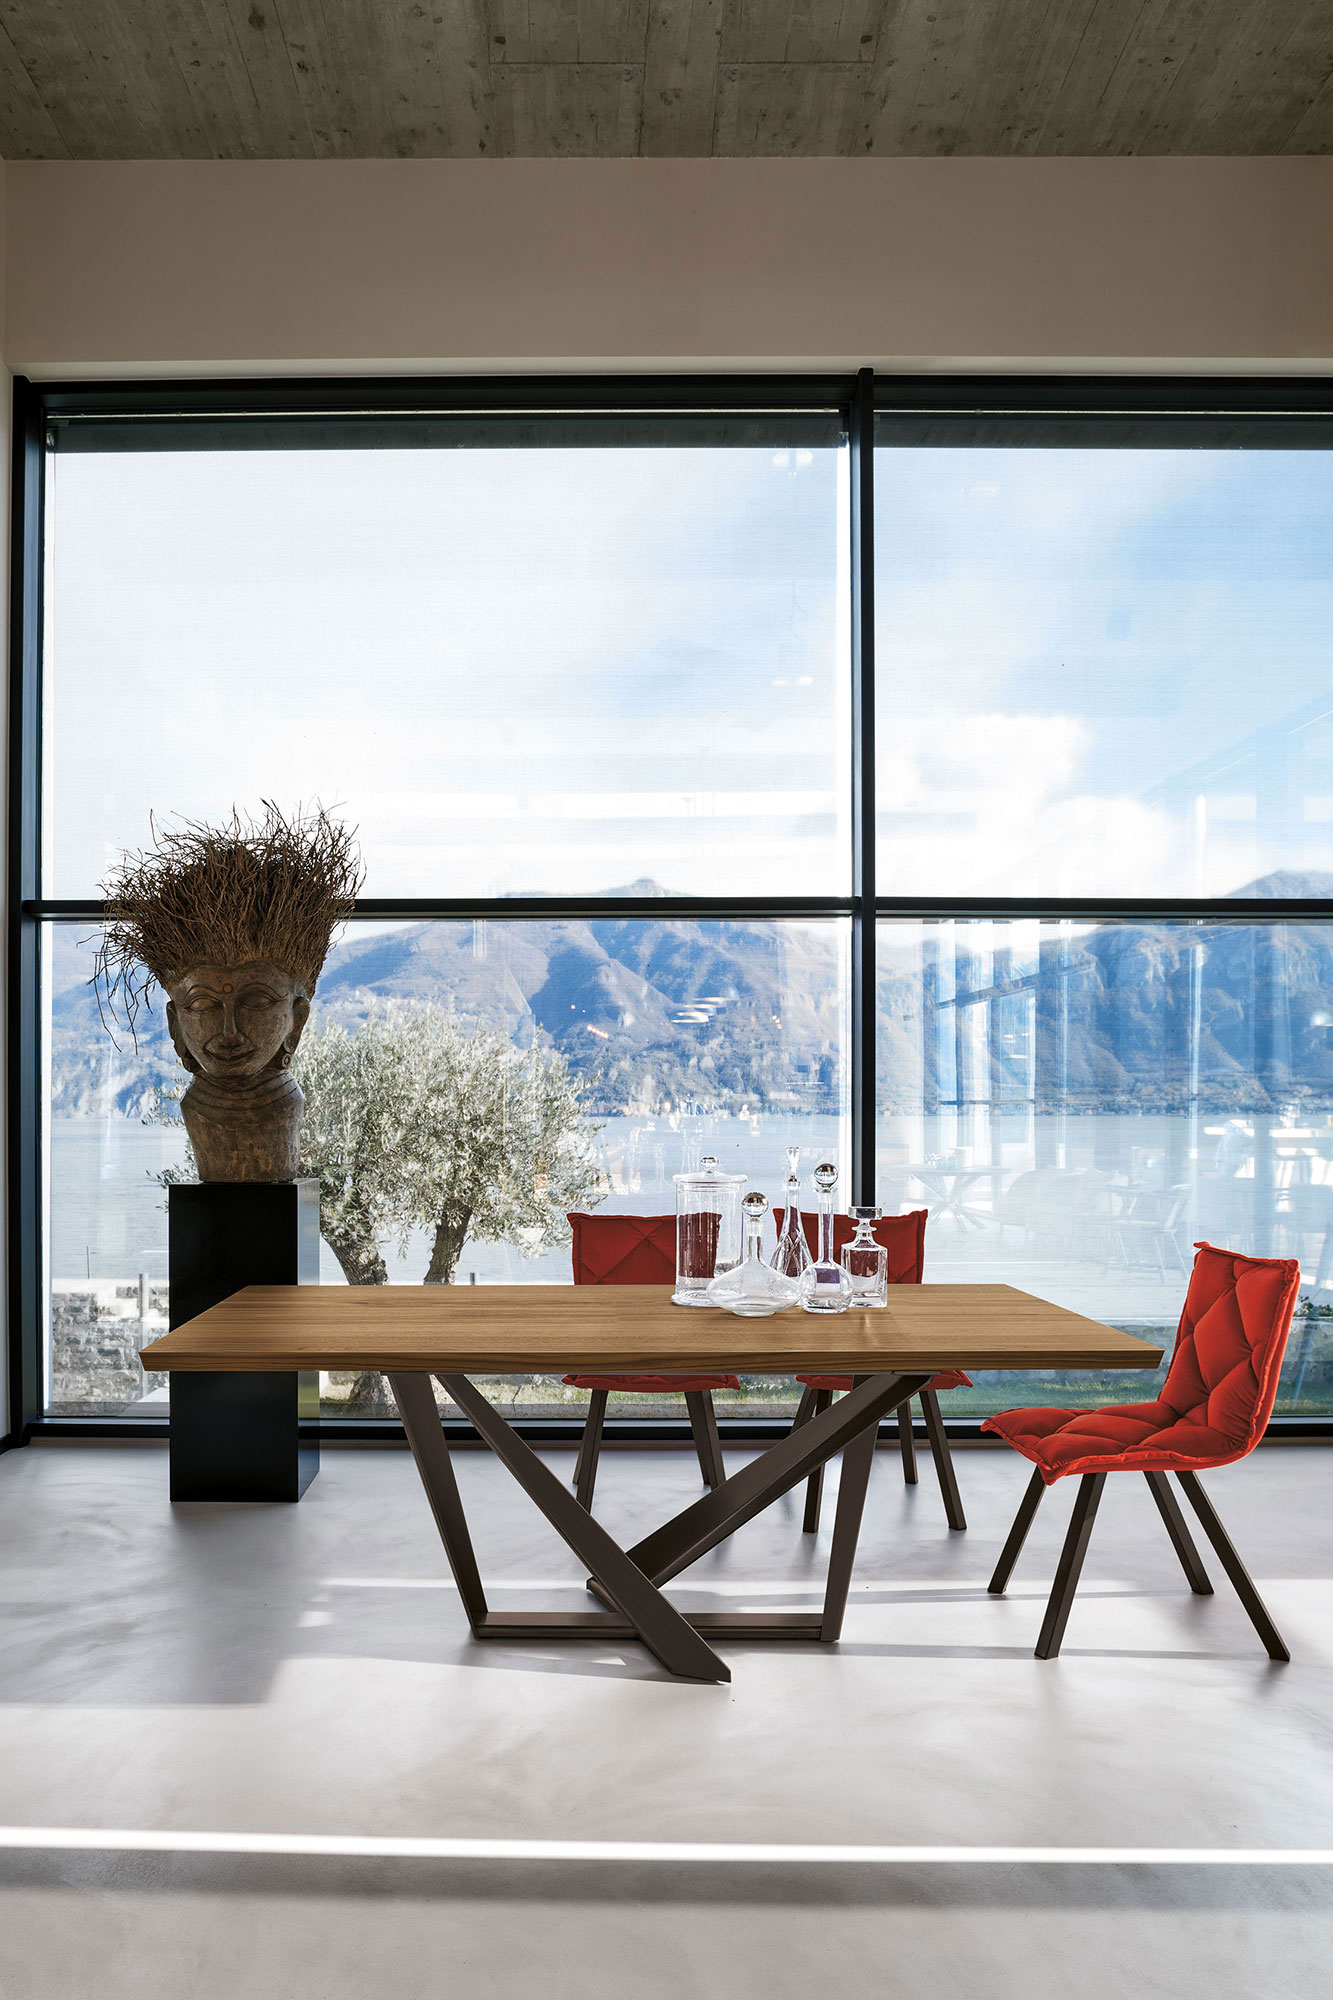 table, modern table, wooden table, trapezi, chairs, red chairs, karekles, accessories, dining table, kitchen table, andreotti, andreotti furniture, epipla, furniture, limassol, cyprus